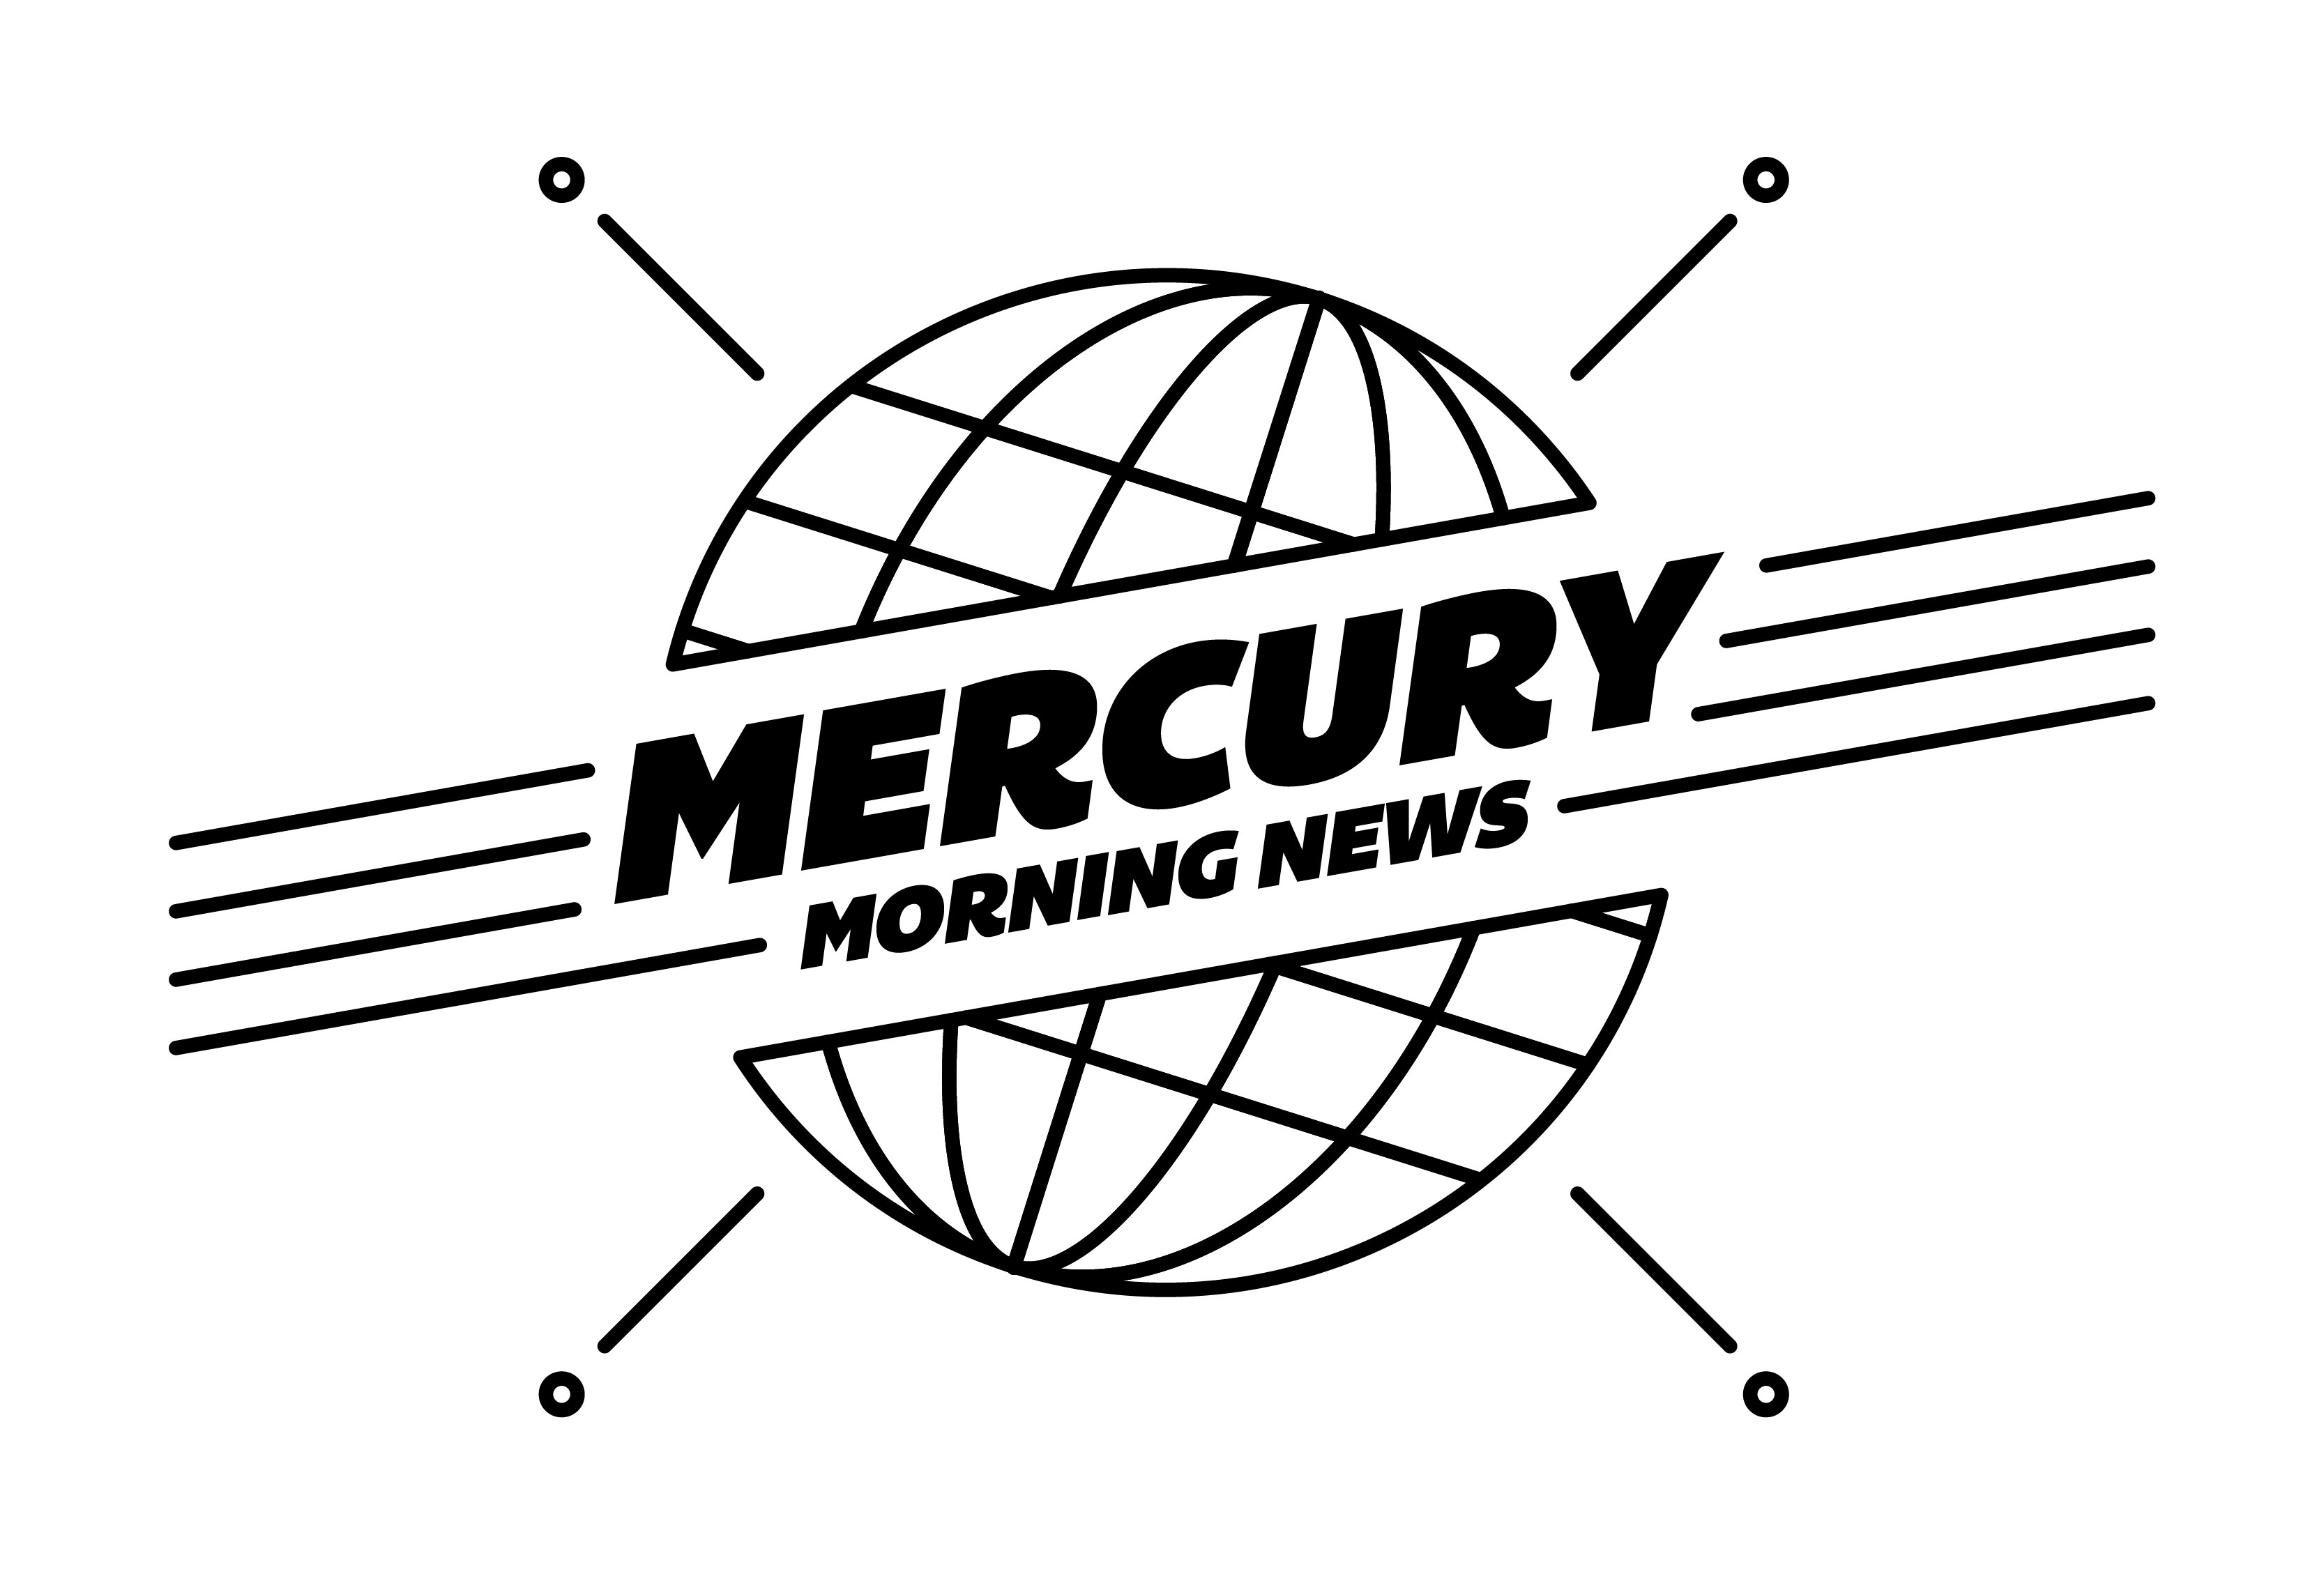 The Mercury Morning News 09/29